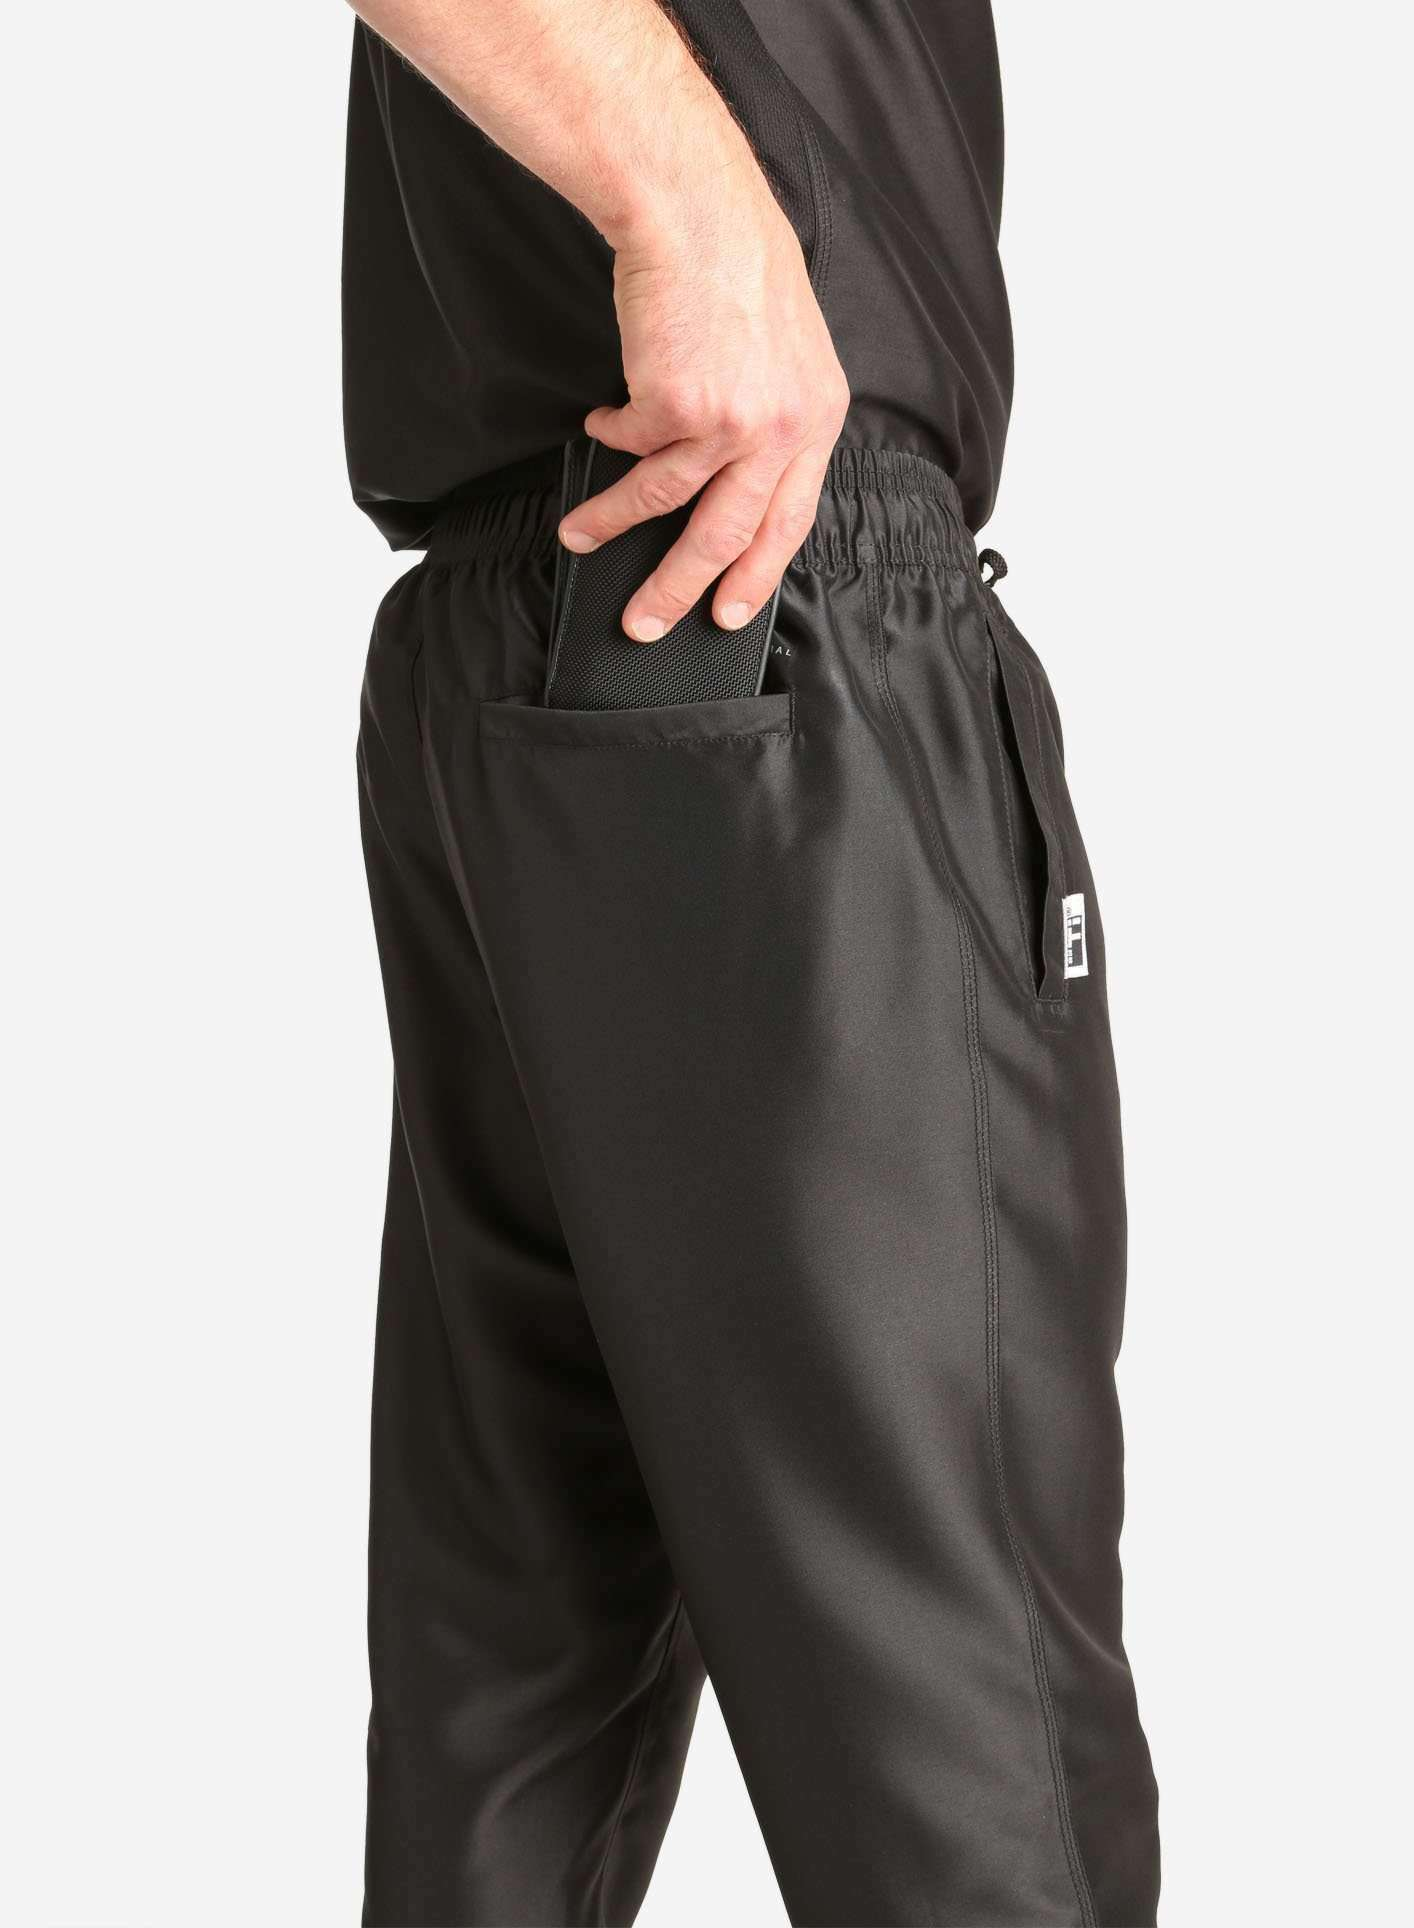 Men's Jogger Scrub Pants in Black Back Pocket Detail View